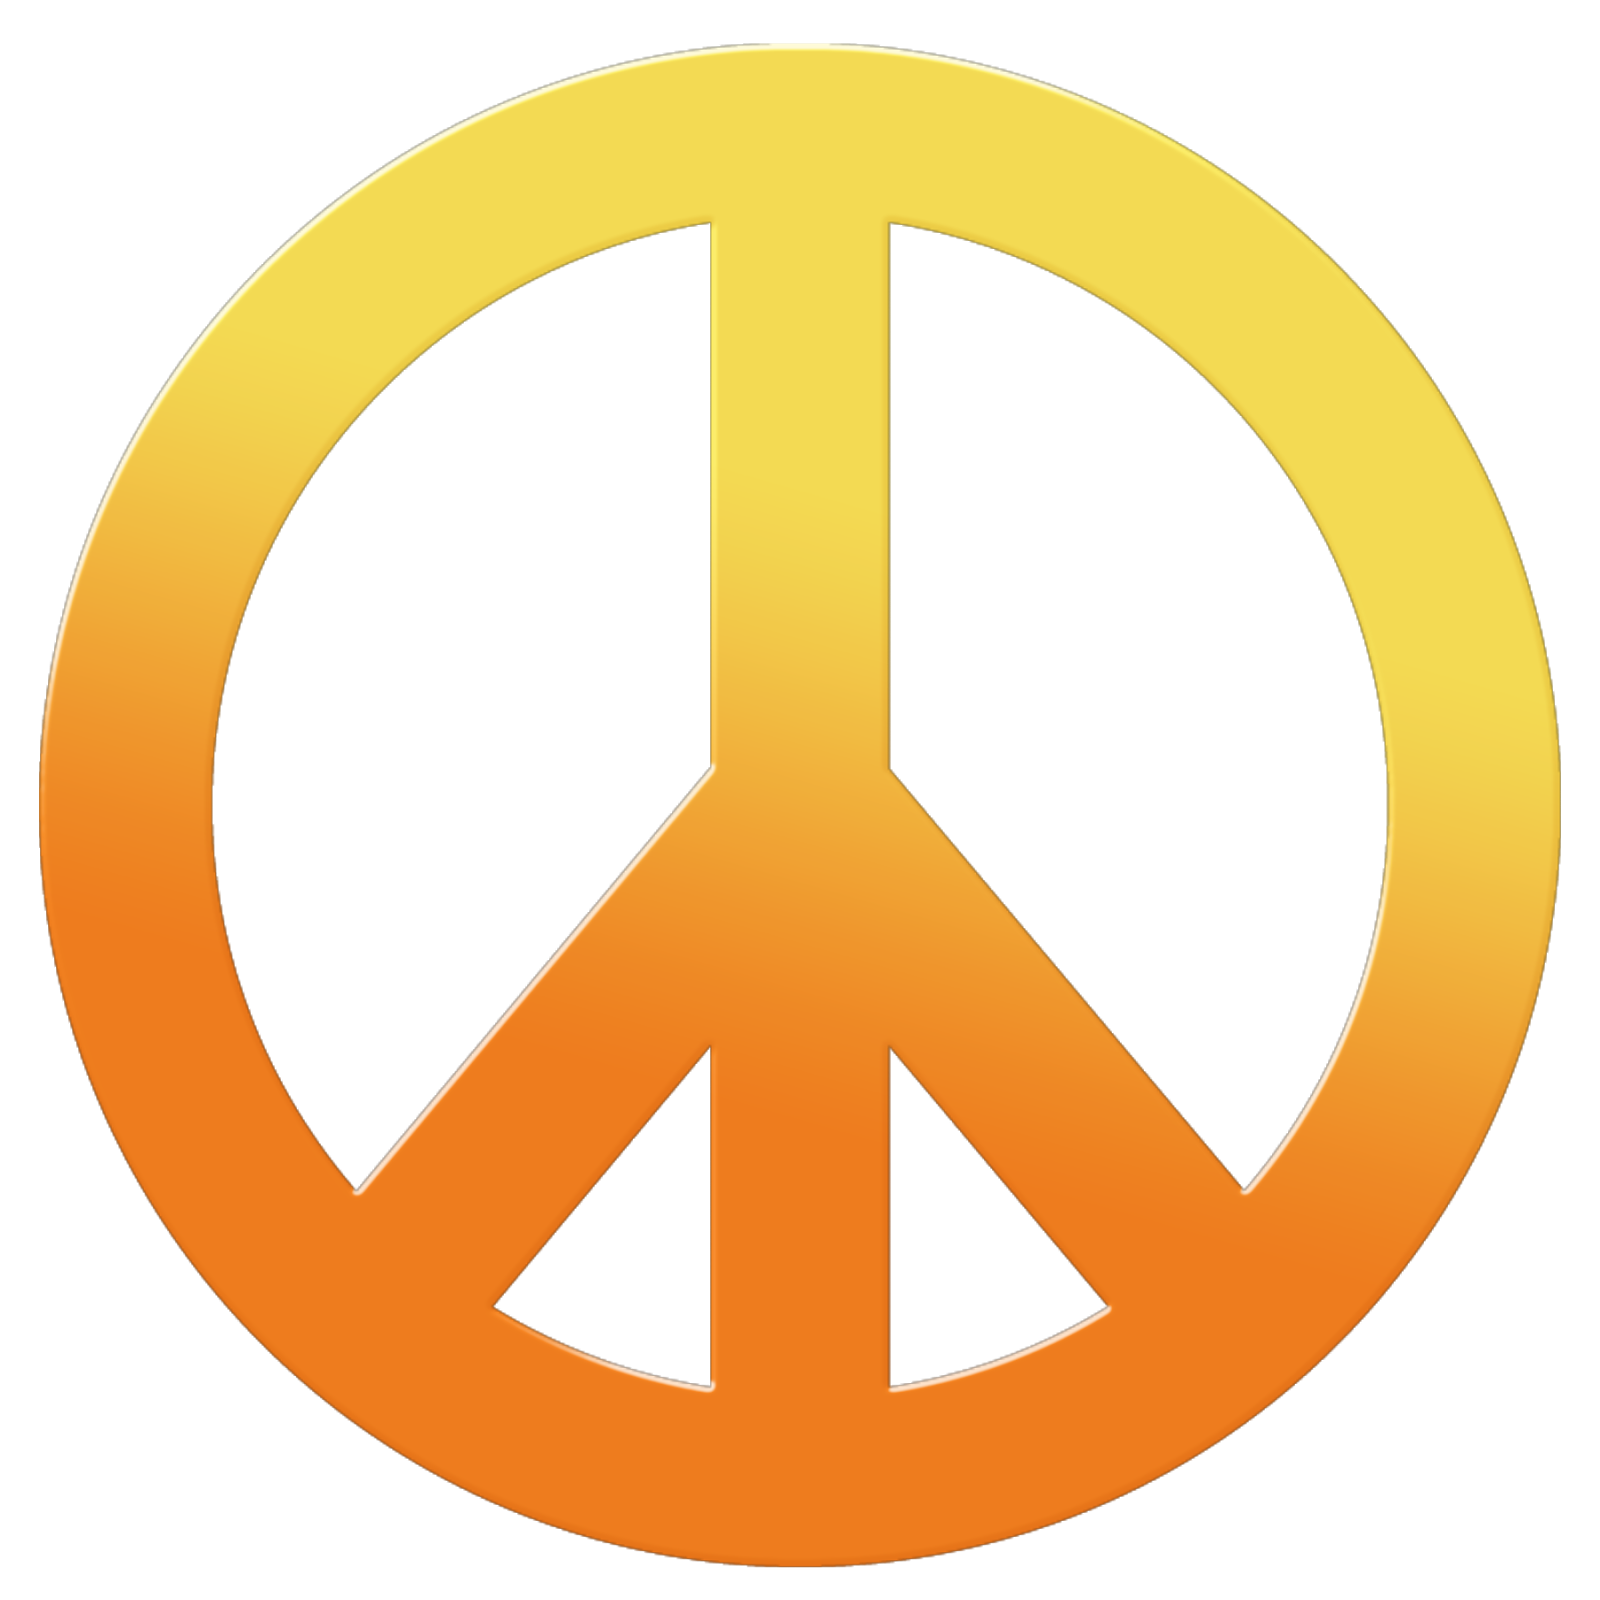 Peace clipart issue global. Sign transparent png pictures